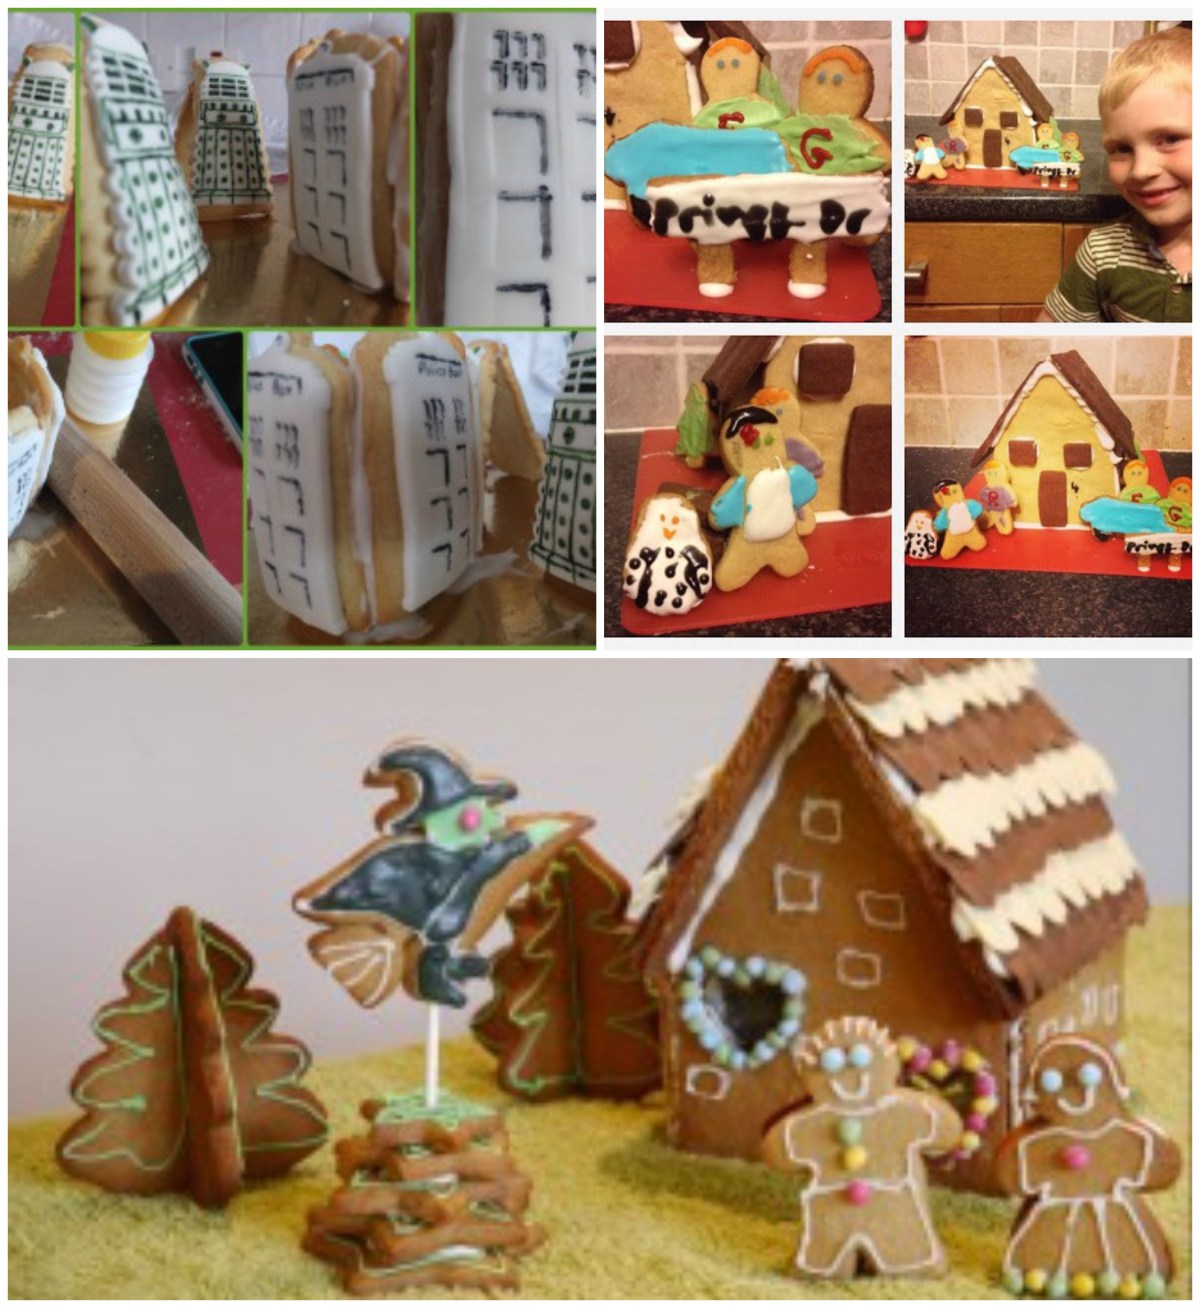 3dbiscuits Collage